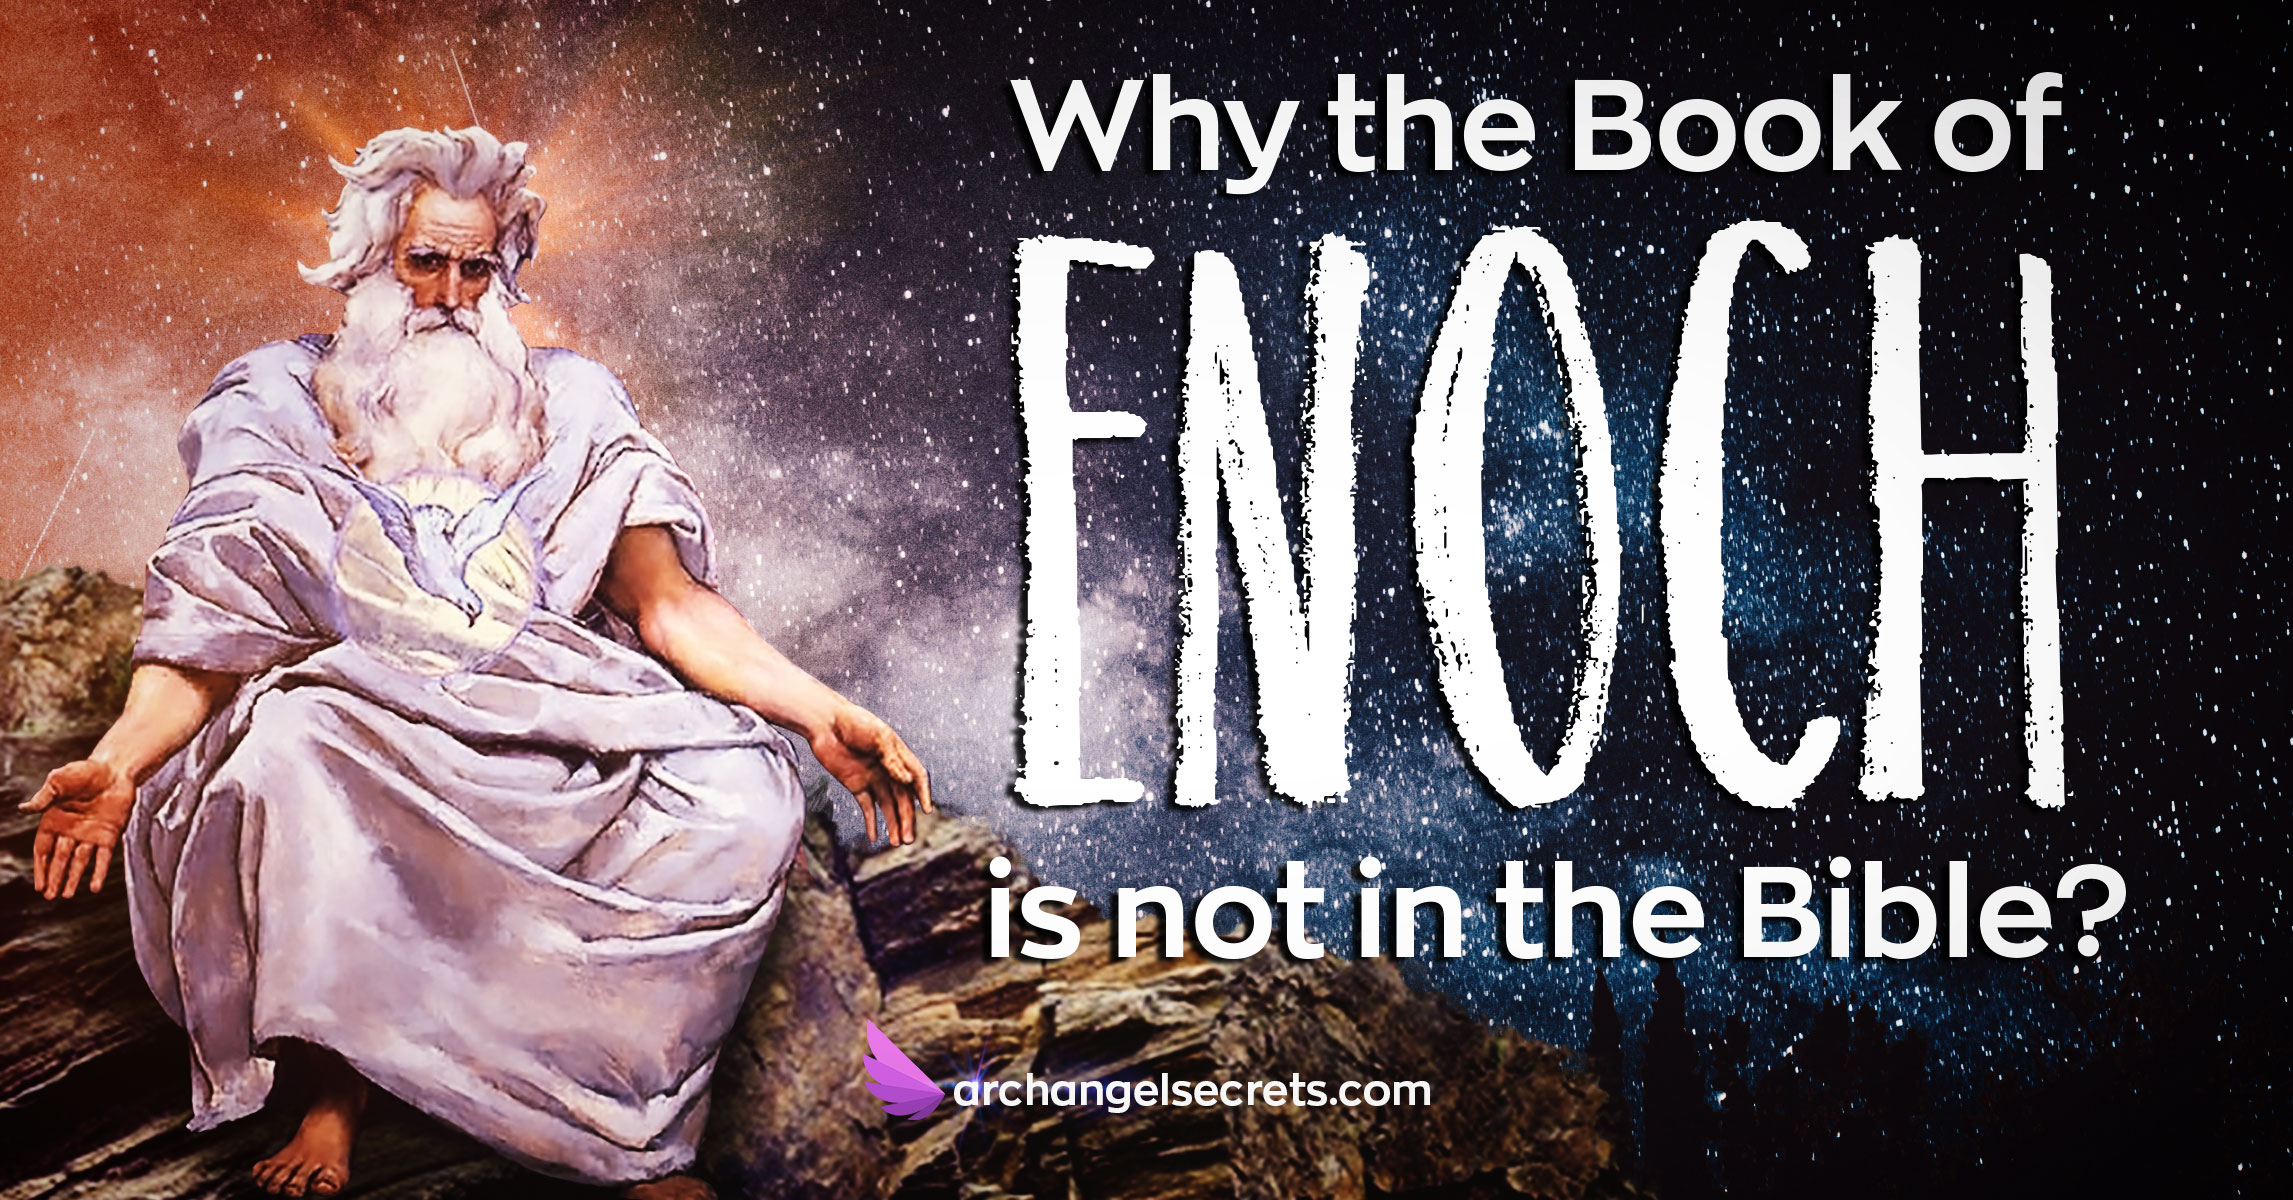 why-is-the-book-of-Enoch-not-in-the-bible-portrait